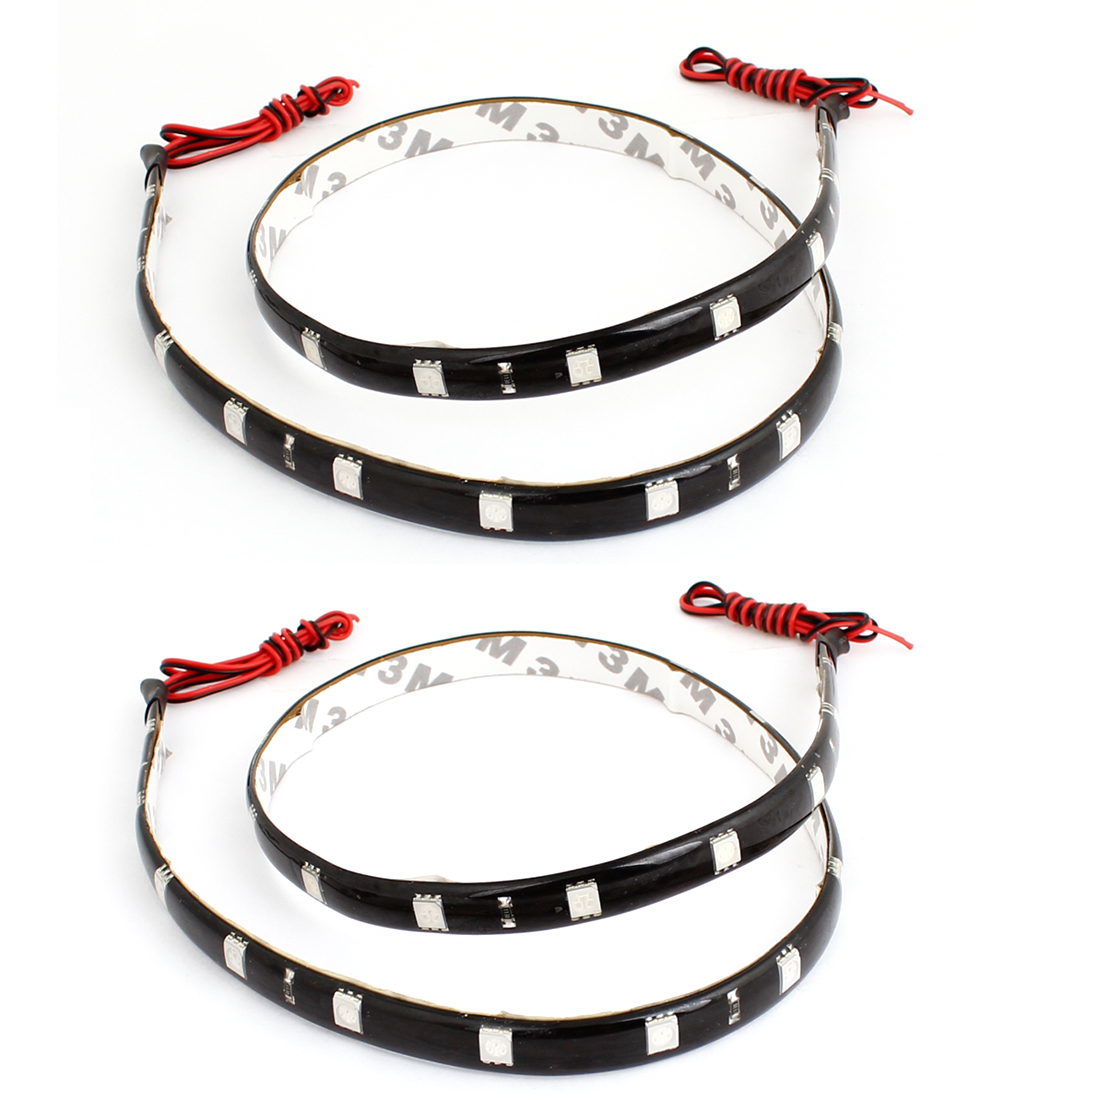 2 Pcs Adhesive Tape Blue 24 5050 SMD Auto Car Flexible Decor LED Strip 60cm